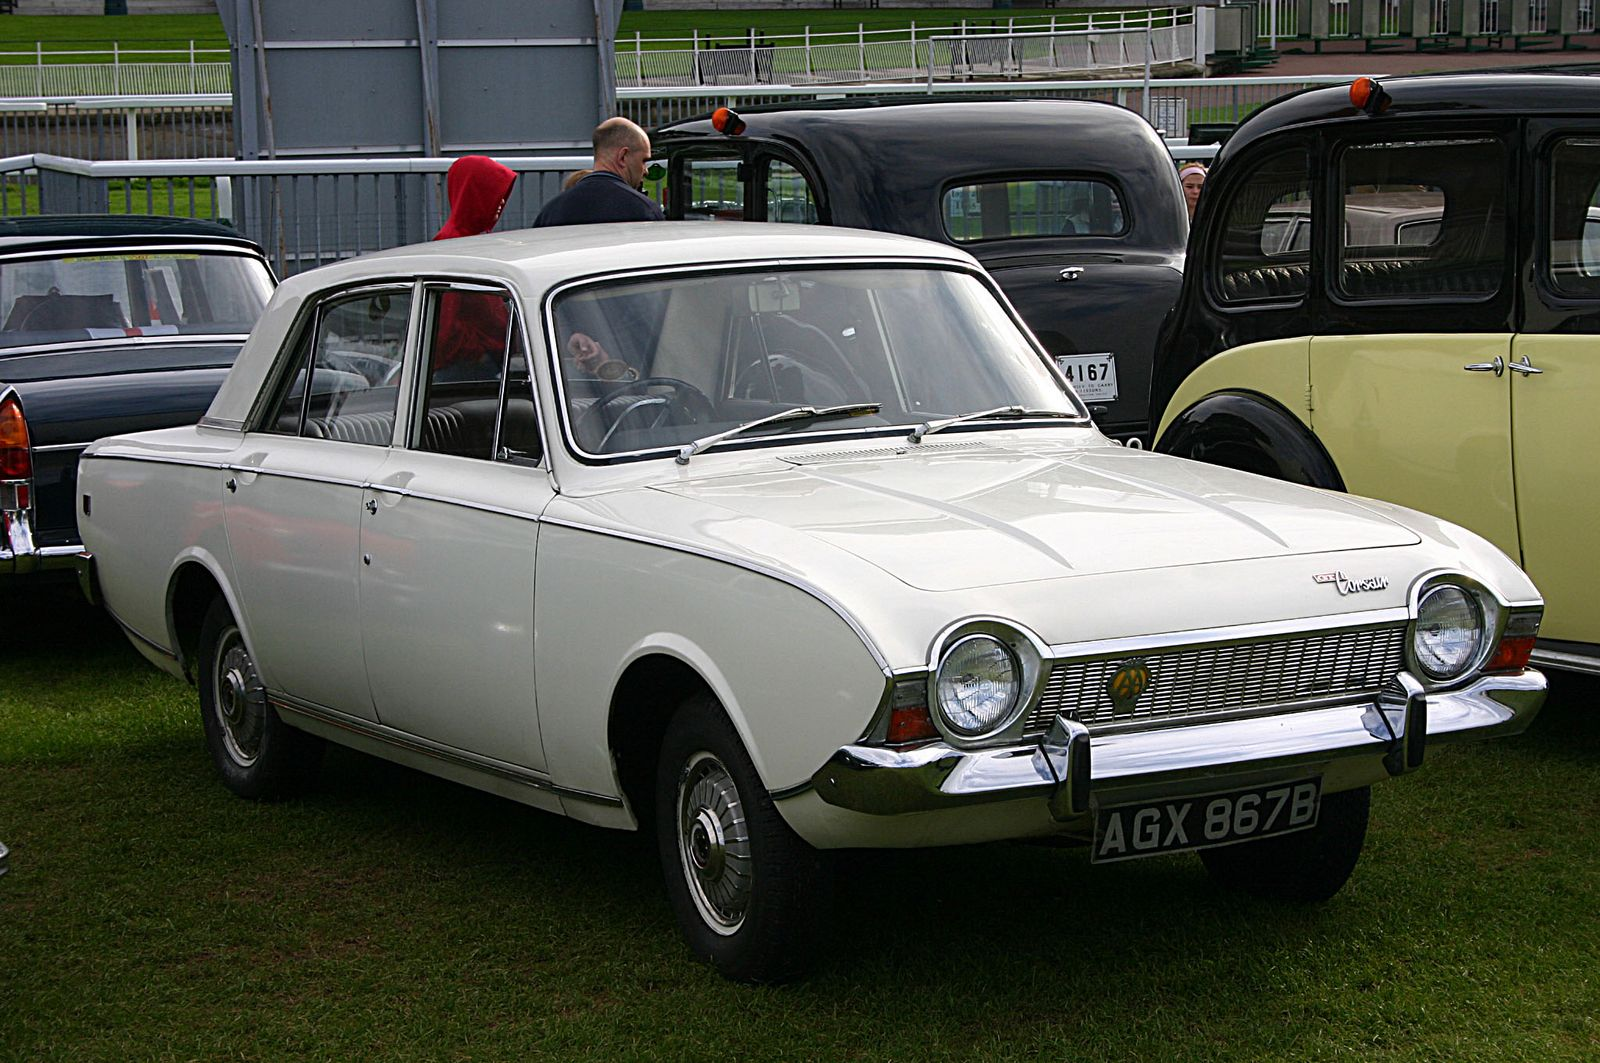 1964 Ford Corsair 120 E Carsaddiction Com